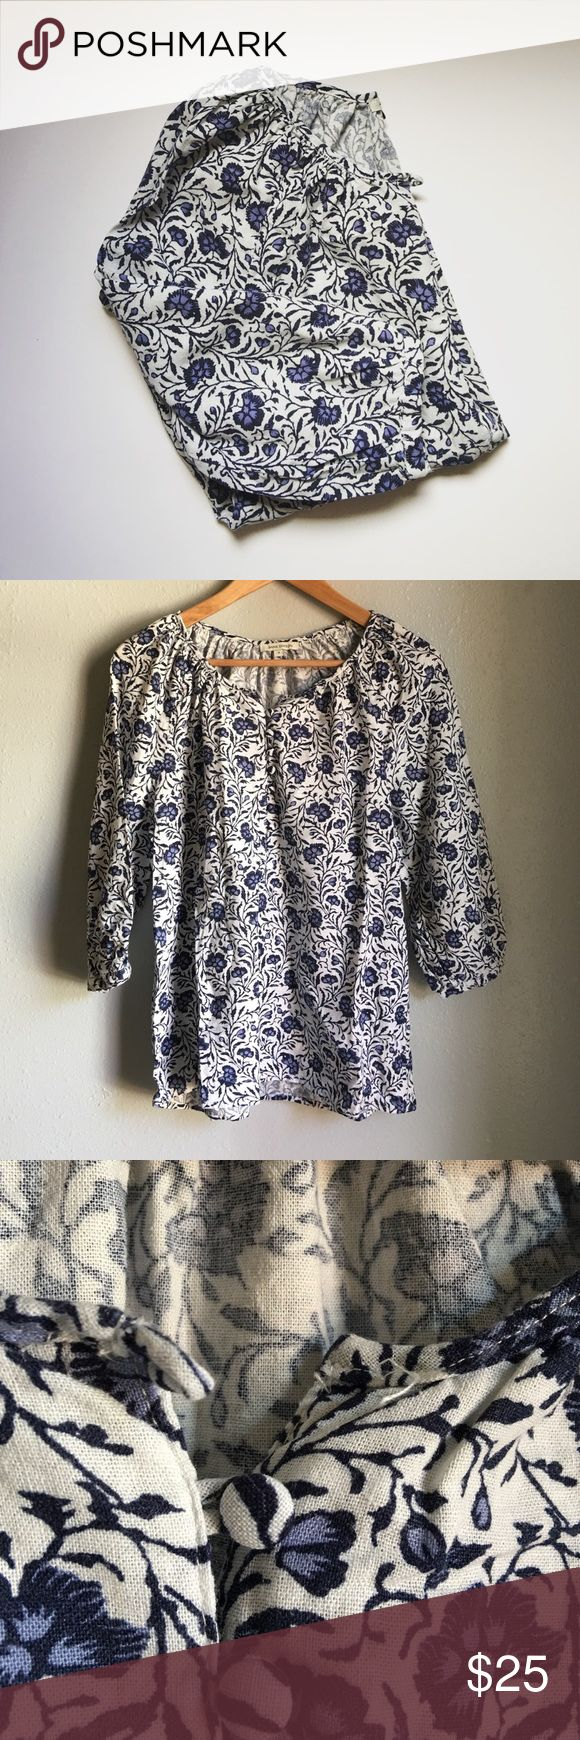 "Floral Blouse -Excellent condition, no flaws  -loose, flowly fit -missing top button -linen type material   Trades welcomed| Please submit all offers through the ""offer"" button Tops Blouses"